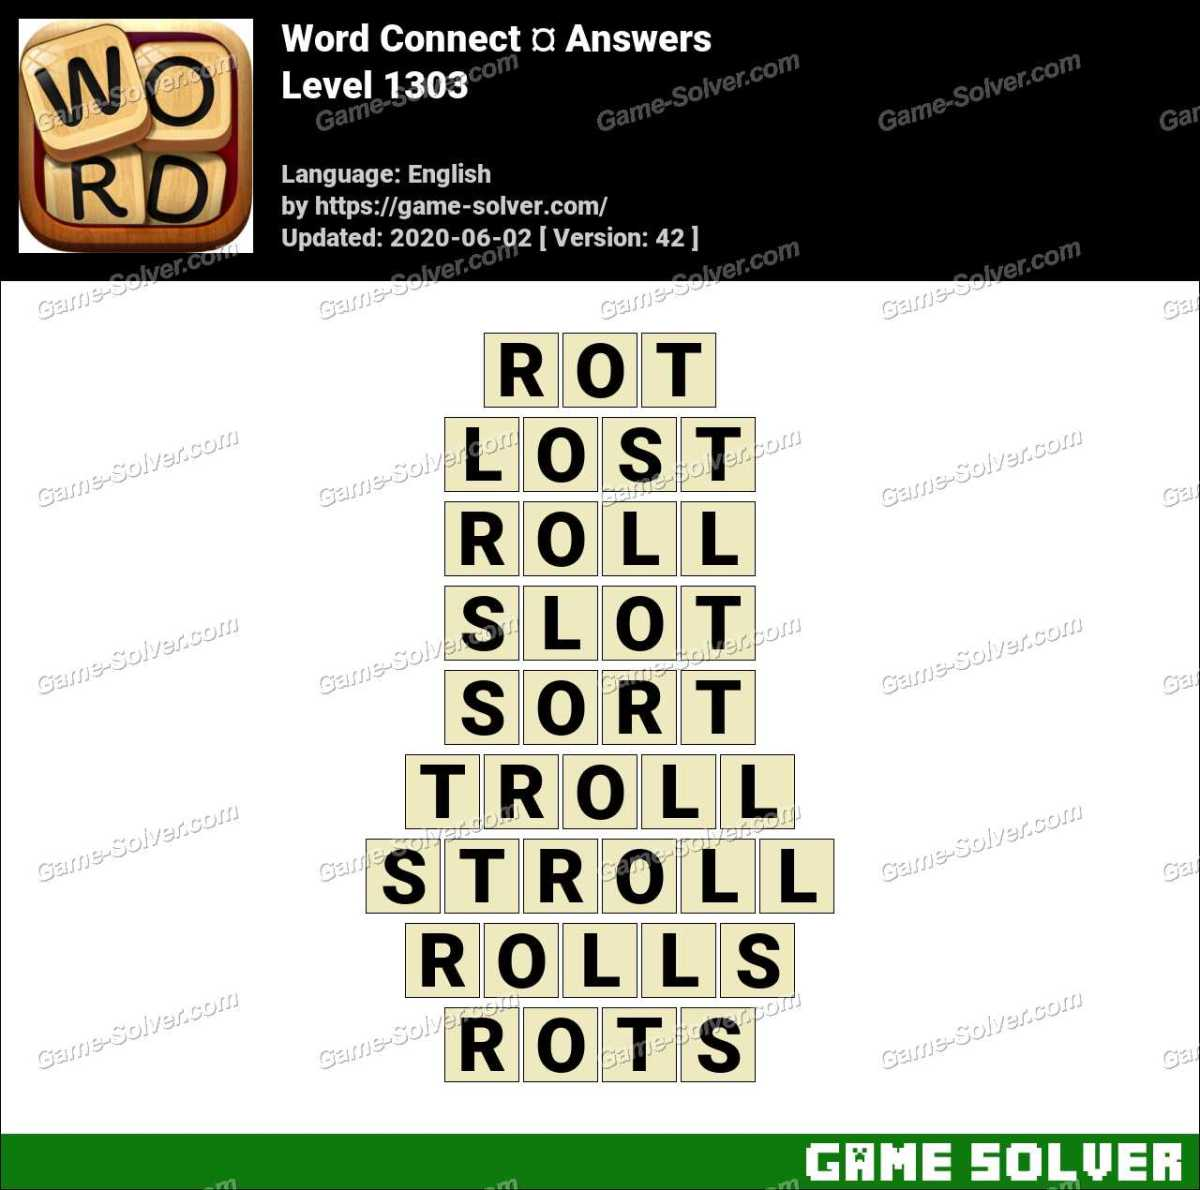 Word Connect Level 1303 Answers